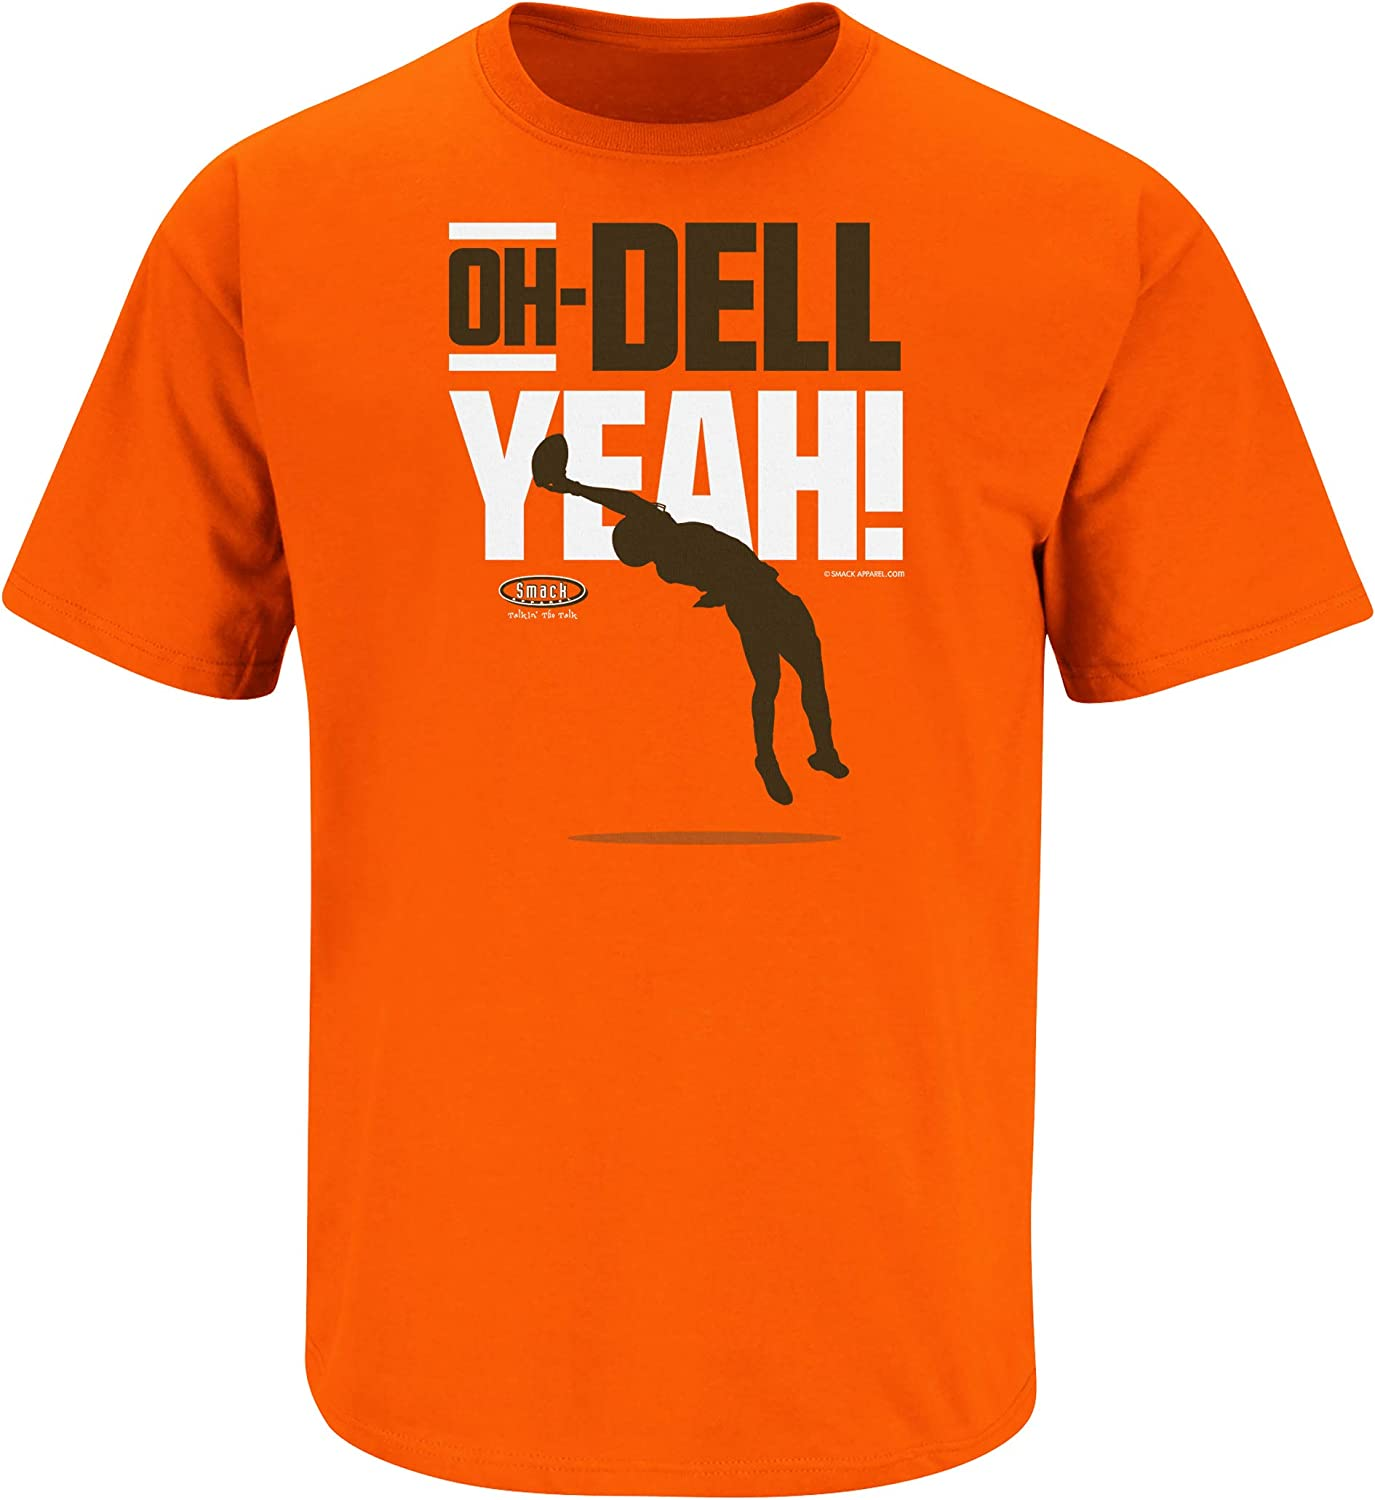 Sm-5X Oh-Dell Yeah Orange T-Shirt Smack Apparel Cleveland Football Fans